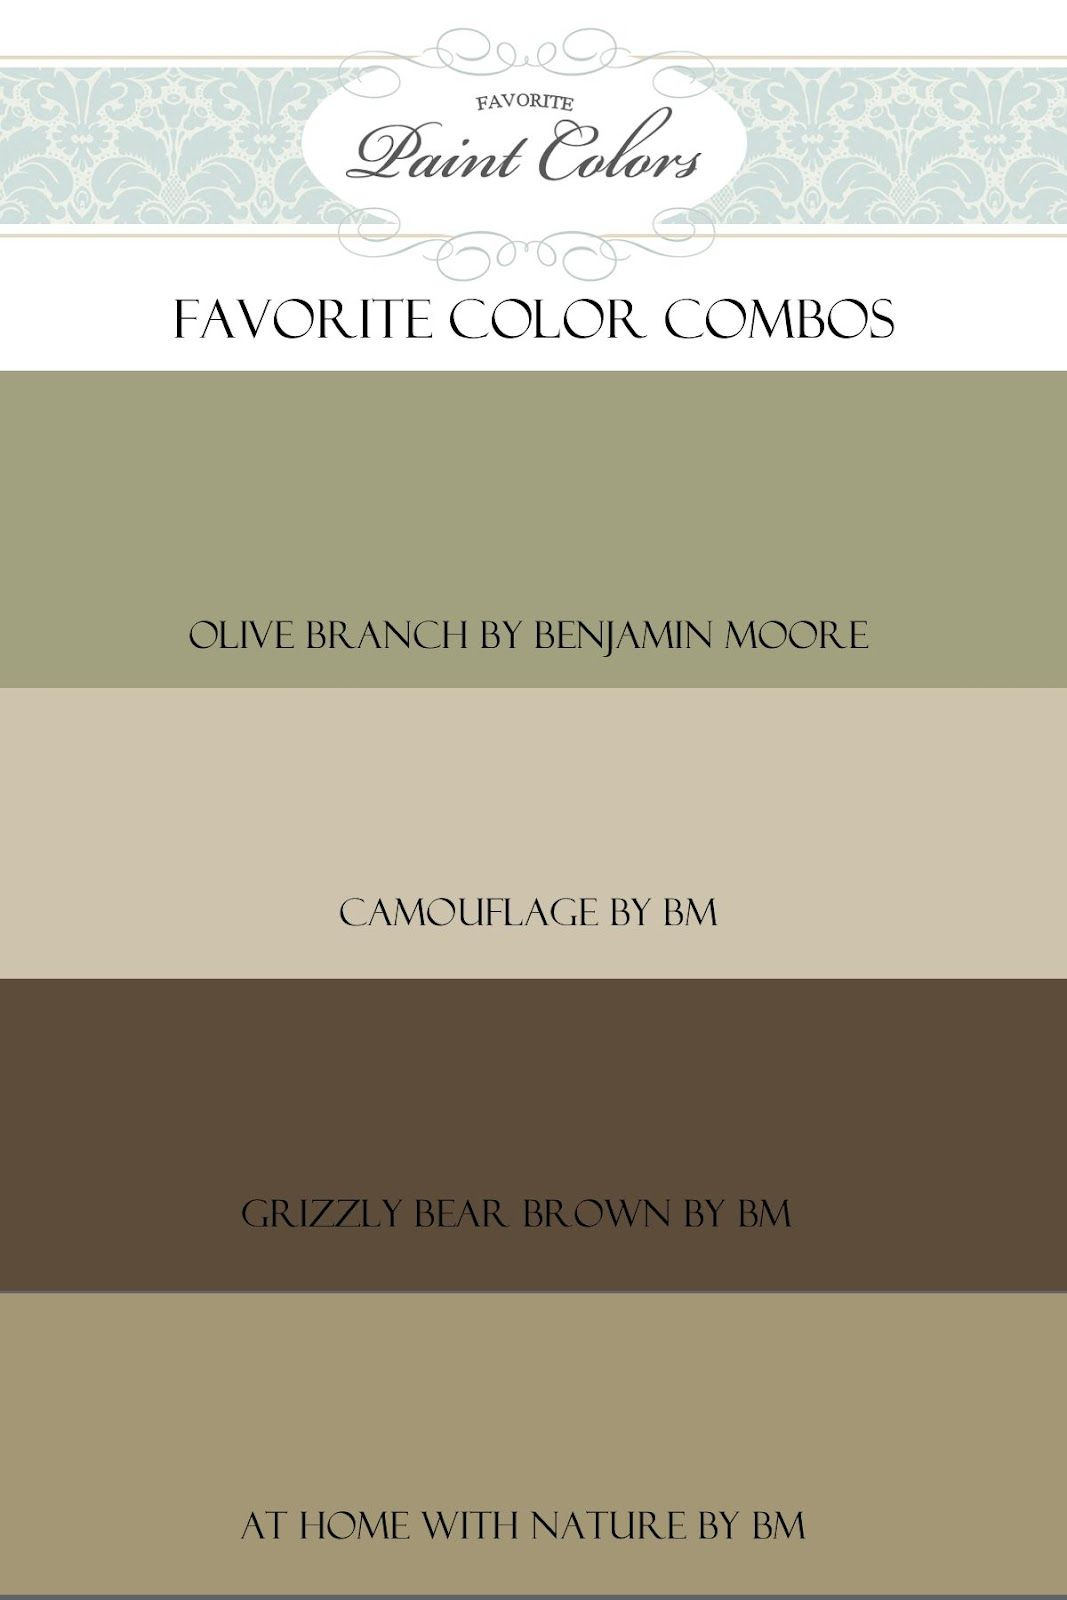 Favorite Paint Colors Great Site To See In Actual Rooms Lots Of Choices